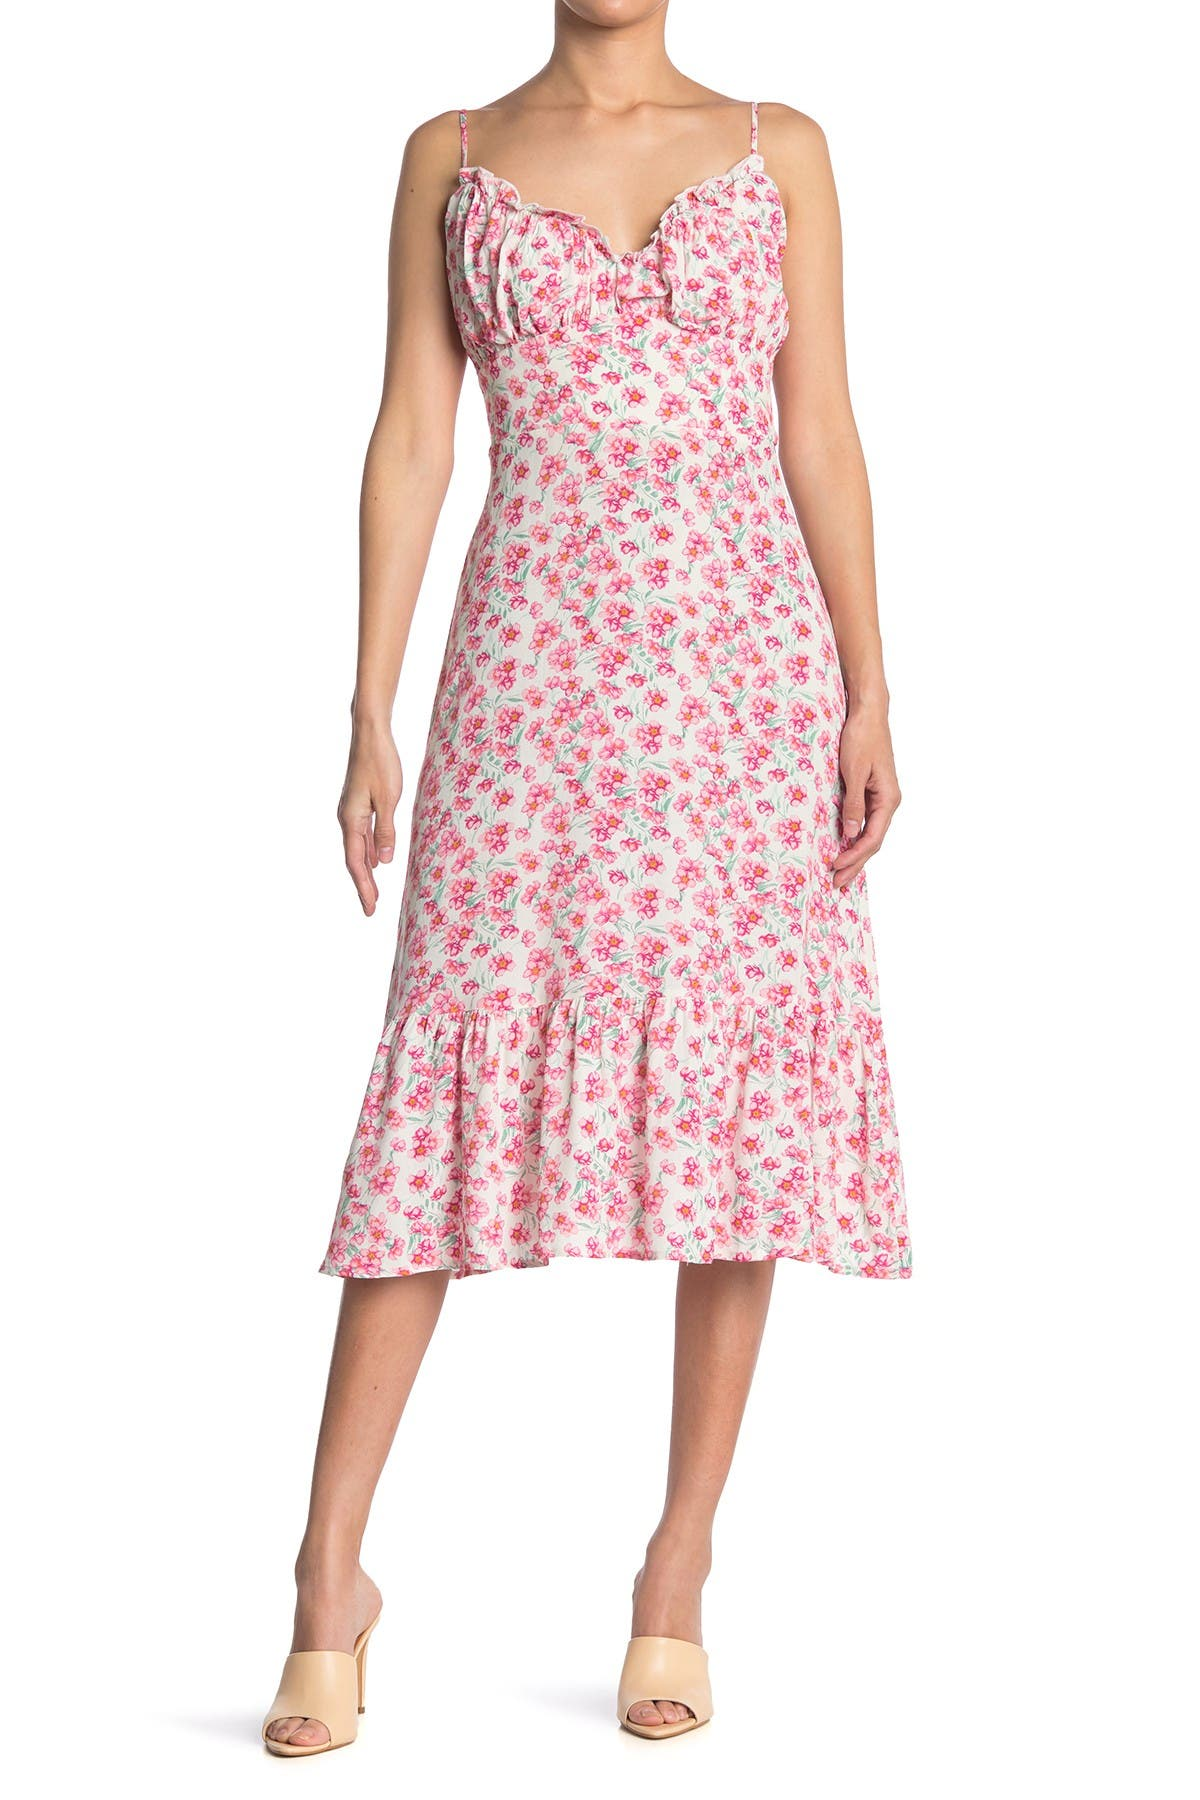 Image of ROW A Floral Strappy Midi Dress